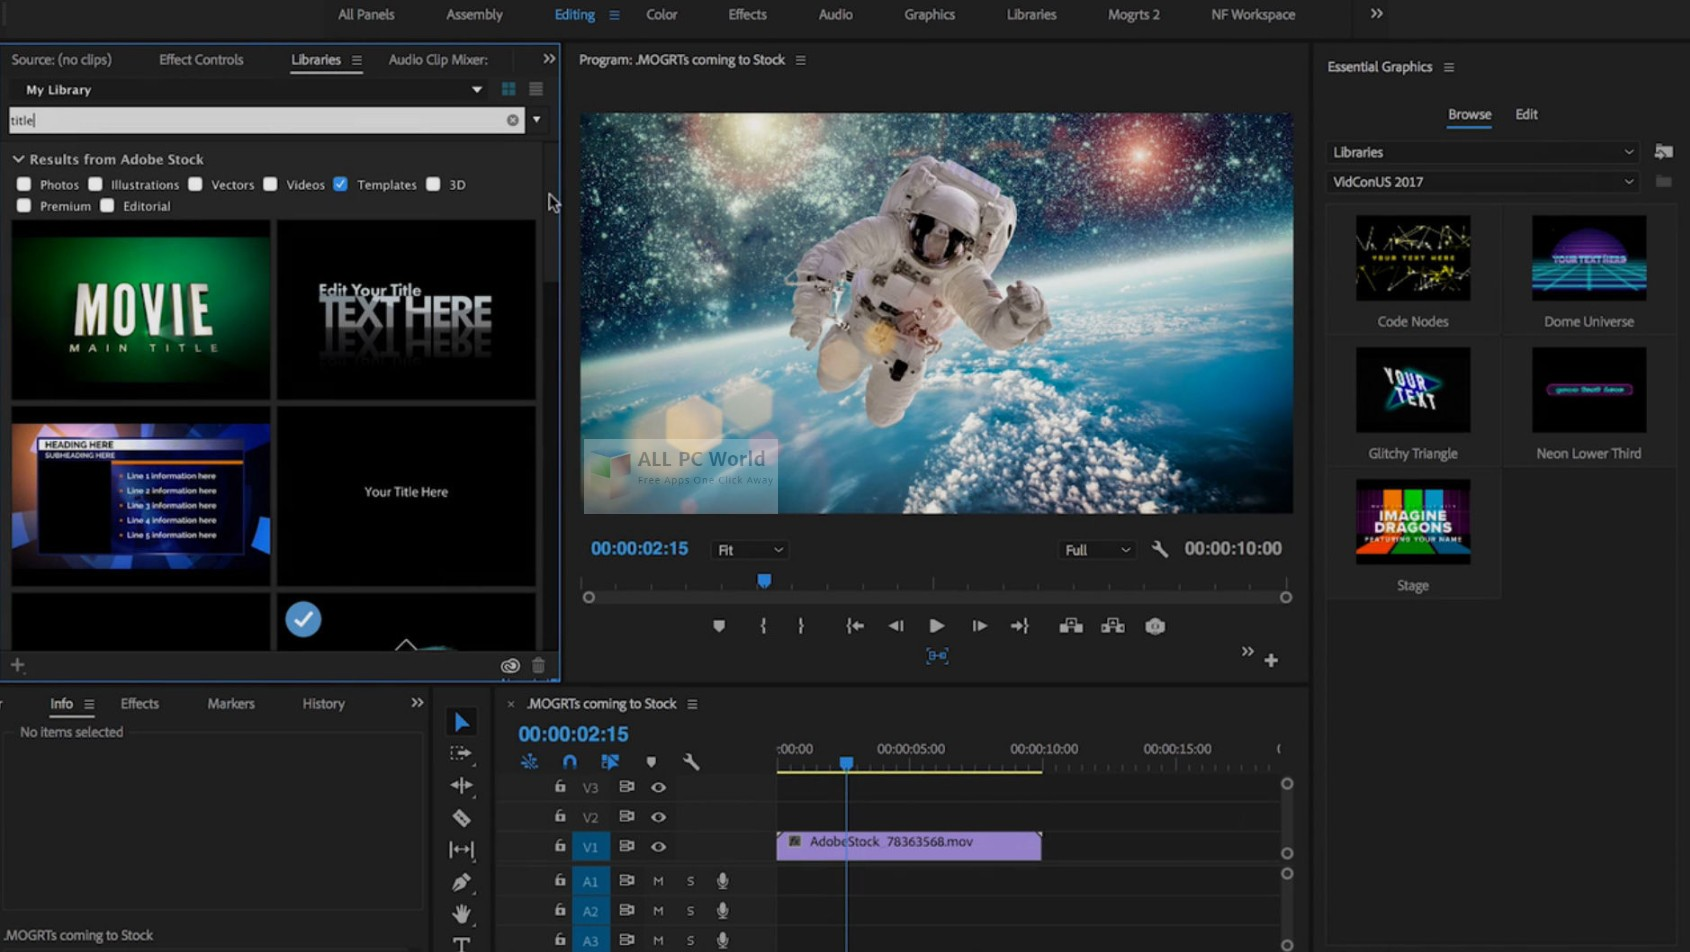 Adobe After Effects CC 2019 Free Download - ALL PC World